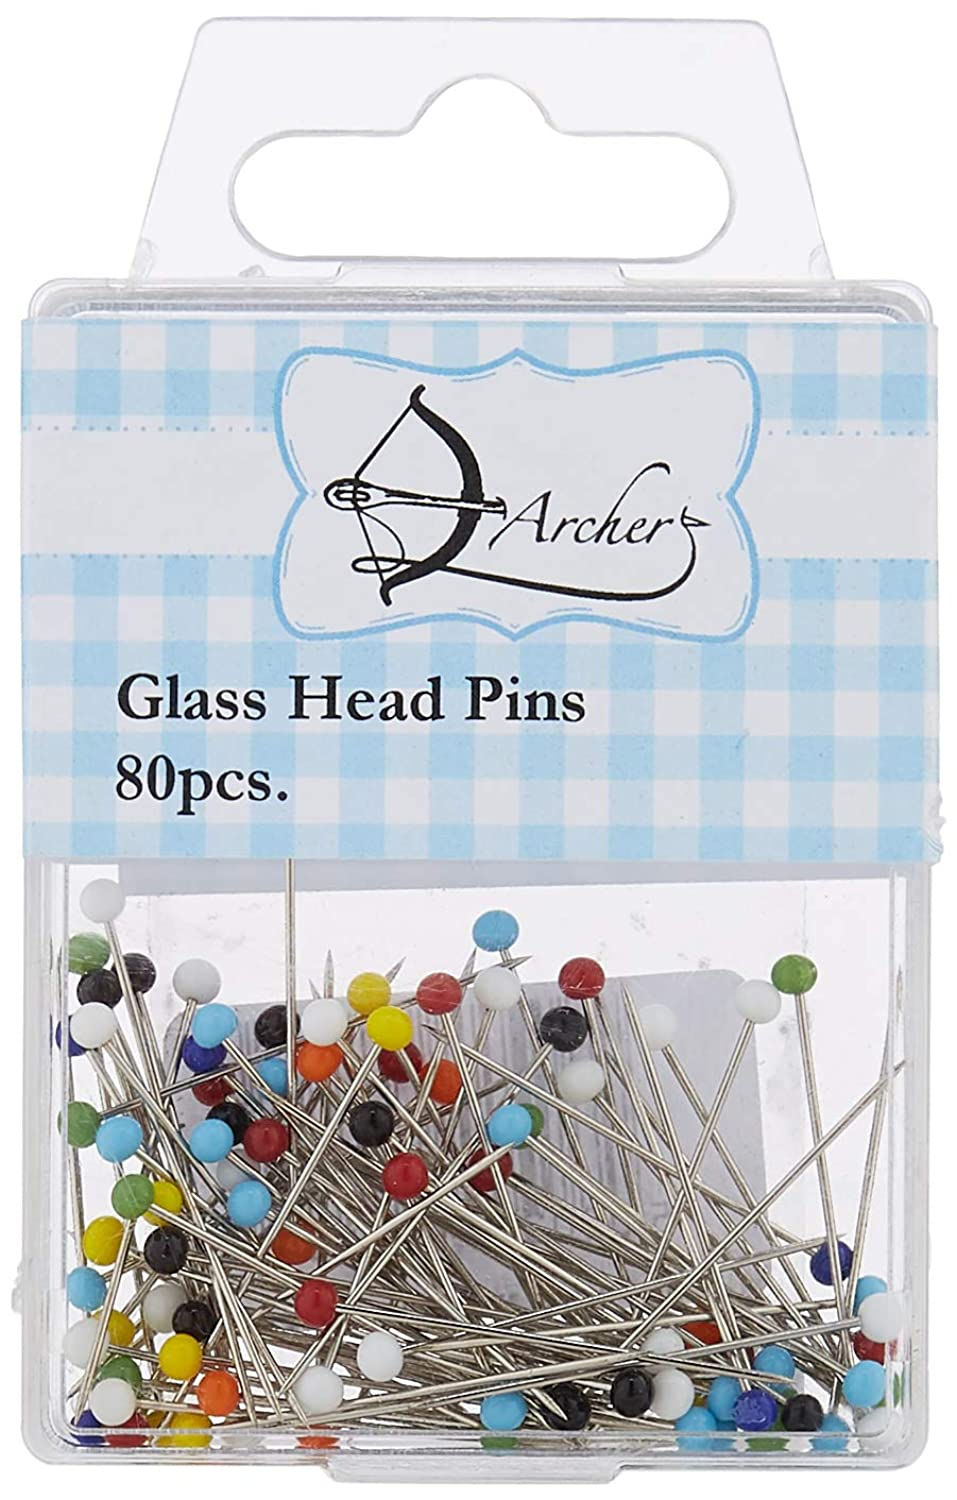 Archer Glass Head Pins 80pcs, Metal Assorted, 10 x 6 x 1 cm